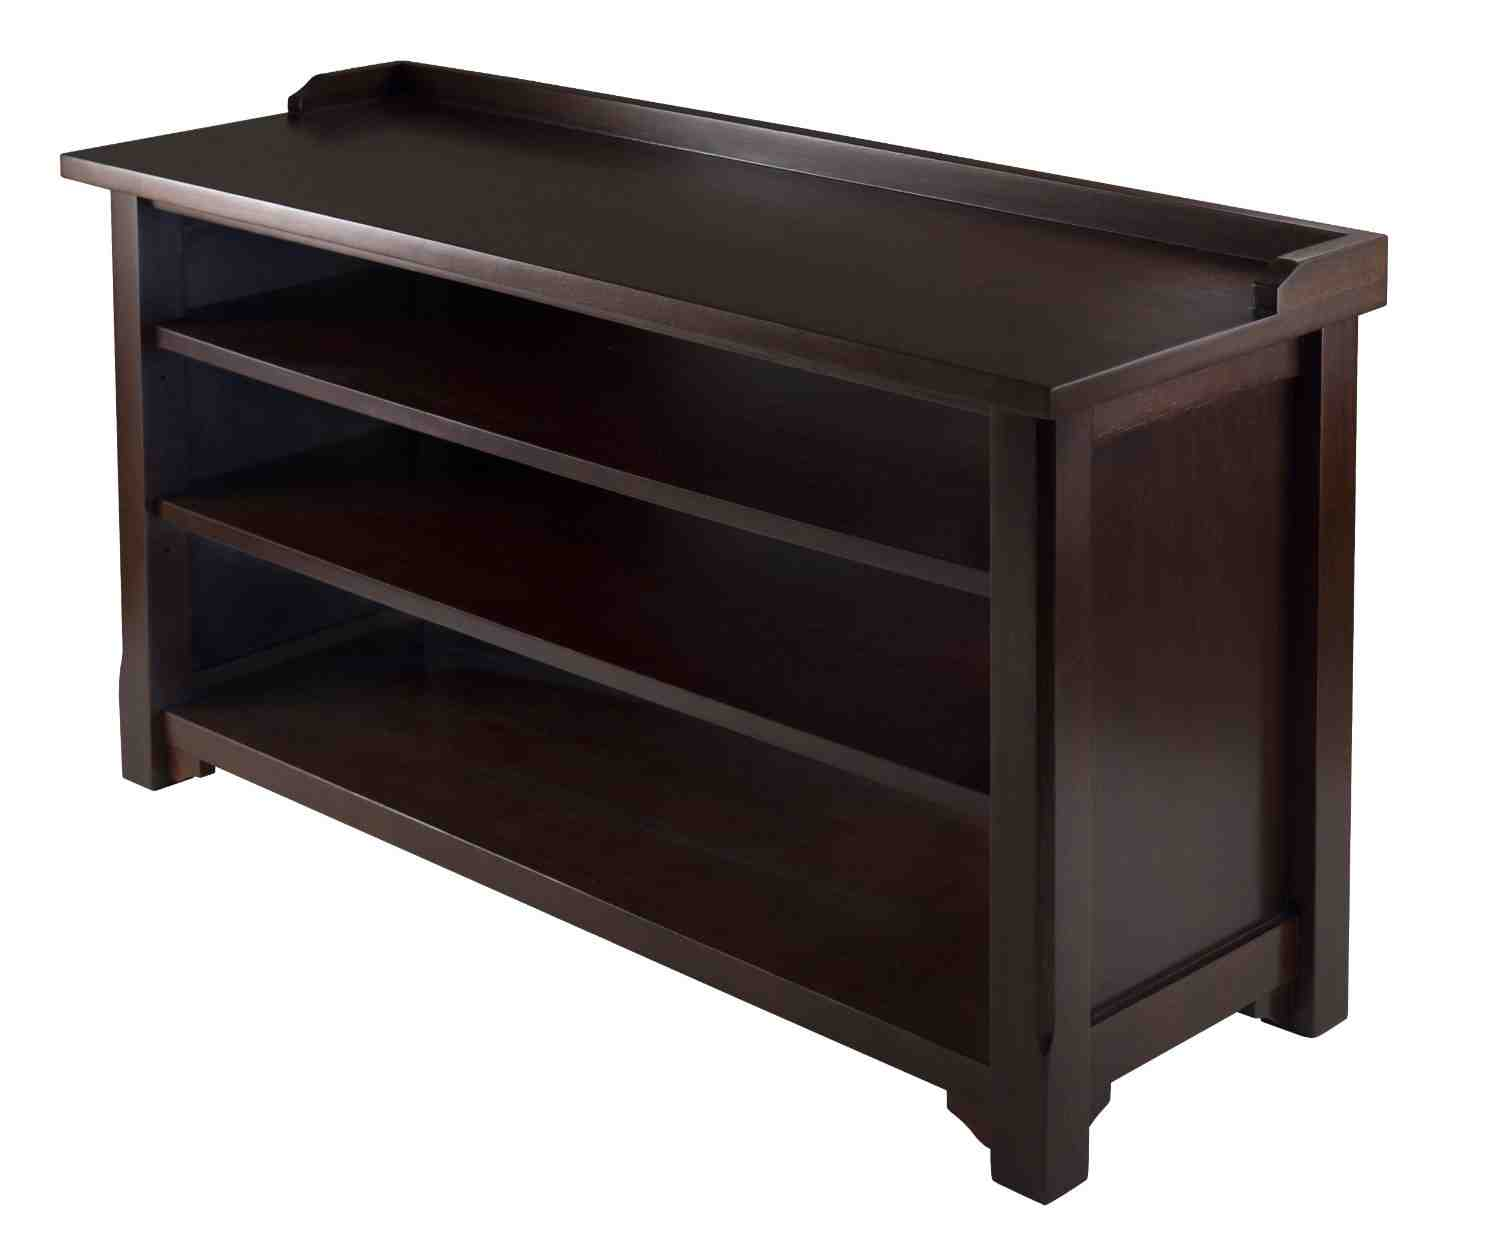 Foyer Bench Shoe Storage : Entryway bench with shoe storage home furniture design